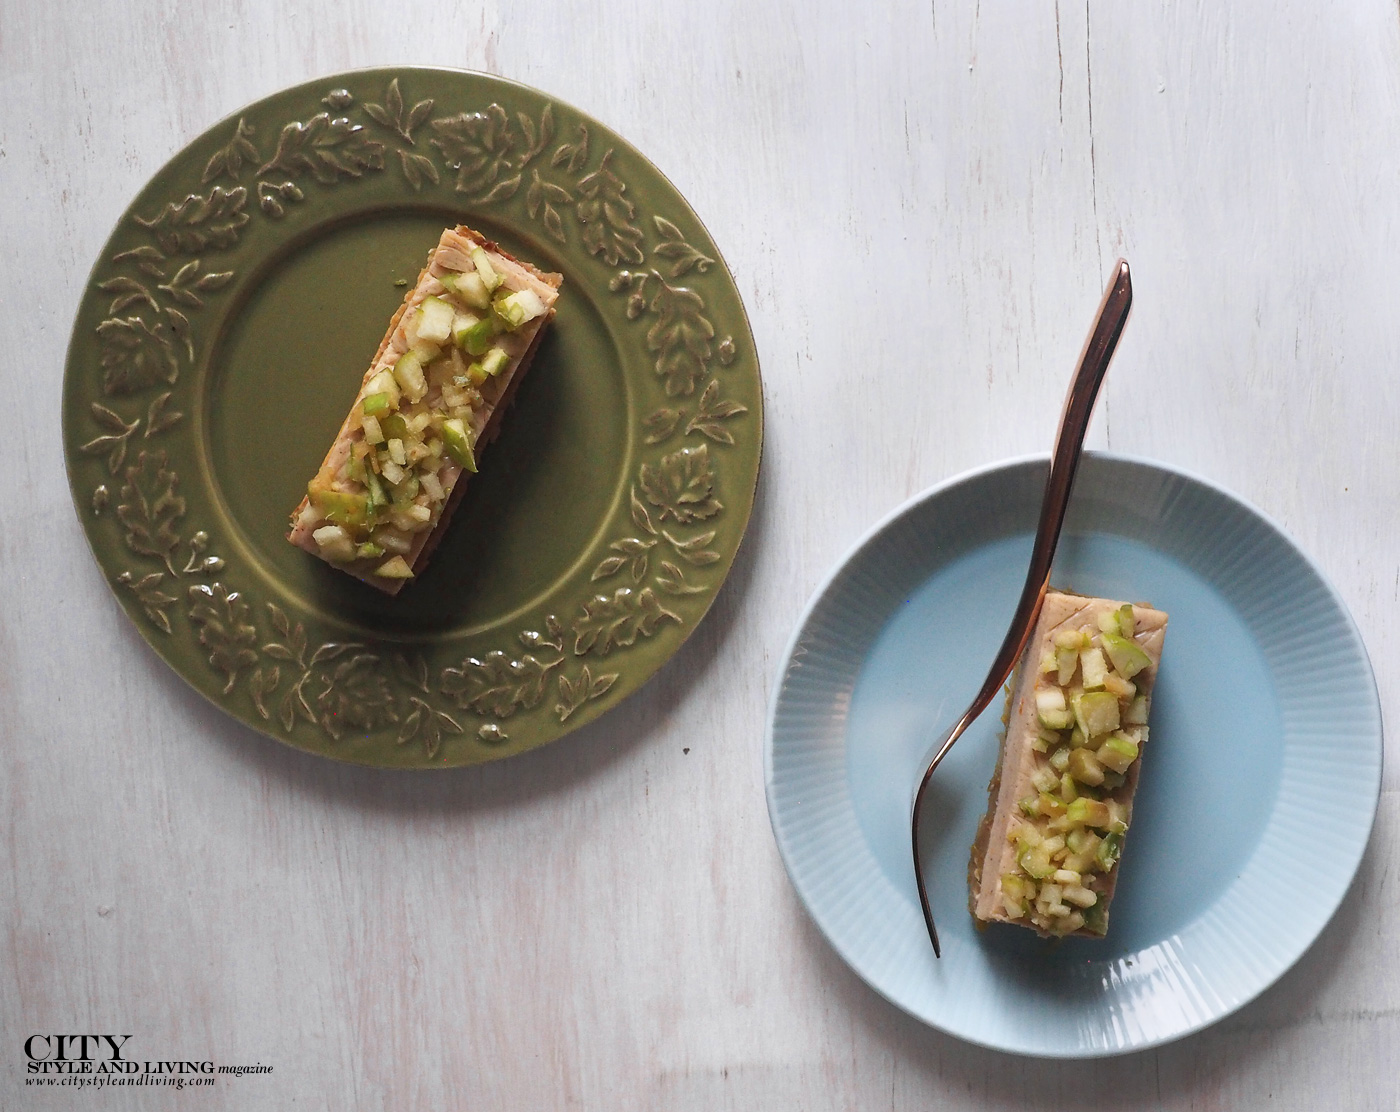 City Style and Living Magazine Spring Baking Apple cremeux two plates